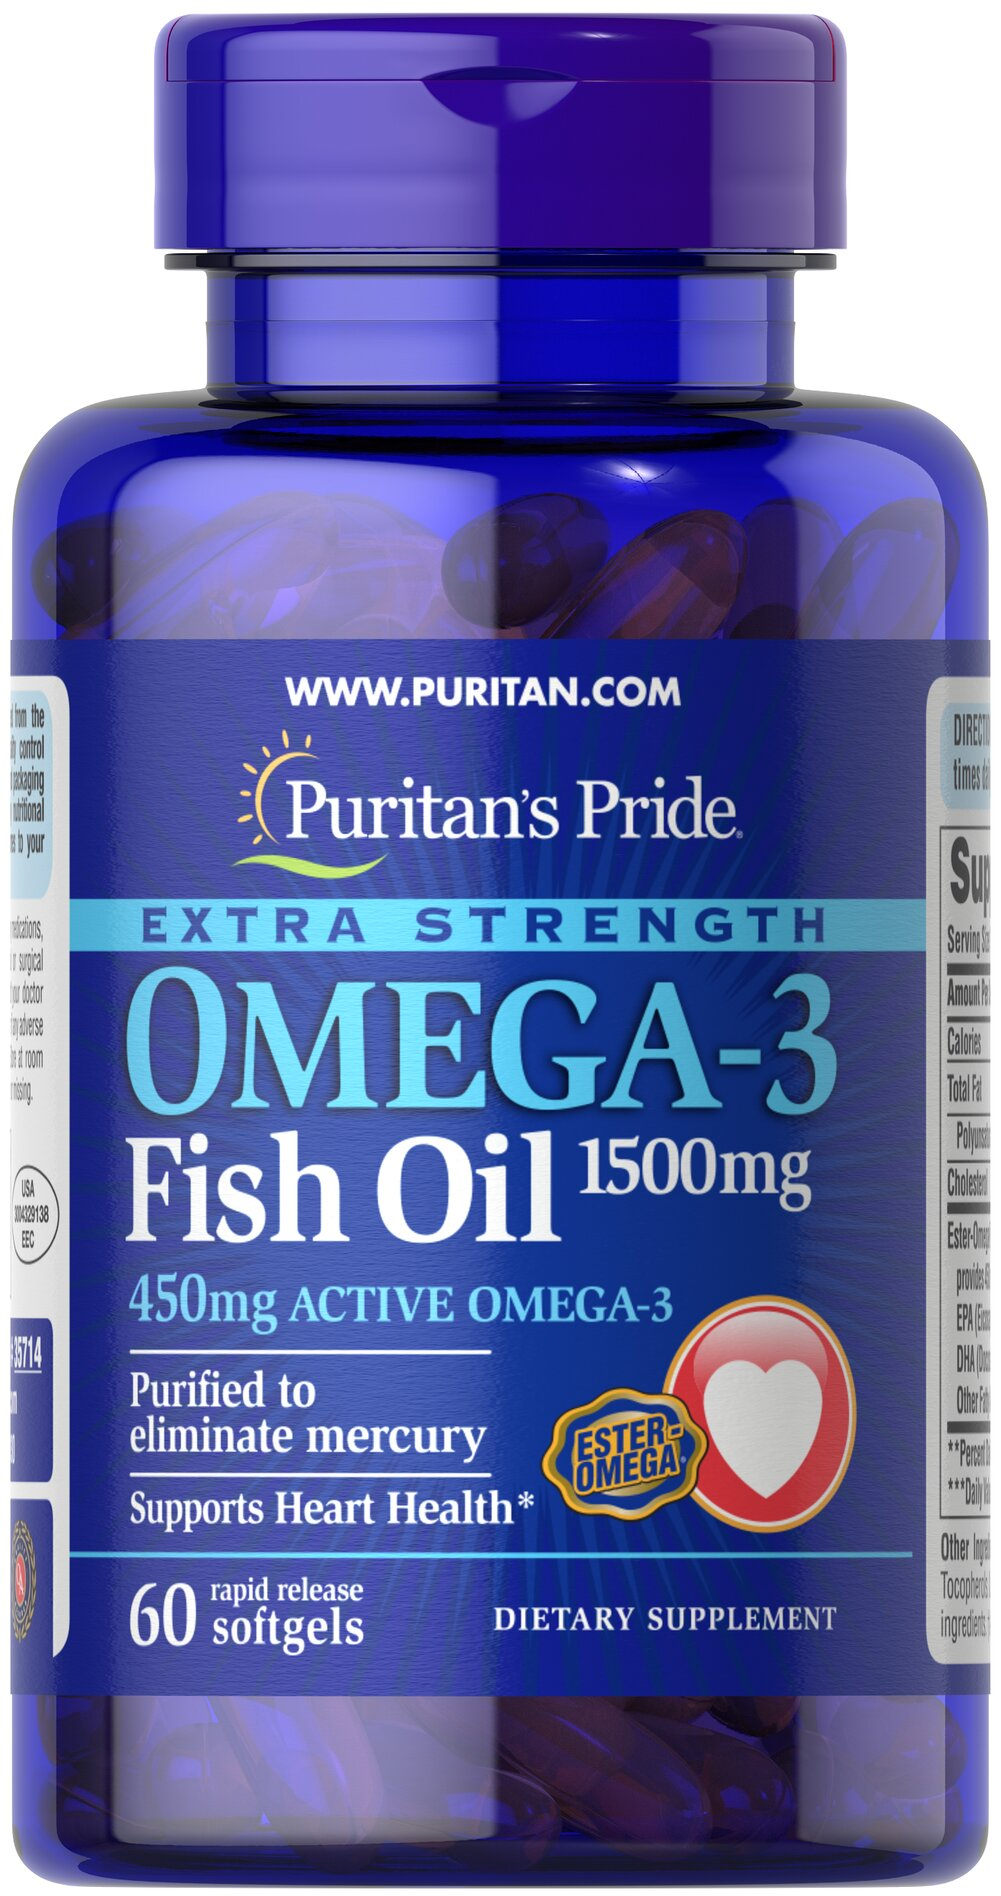 Omega-3 Fish Oil 1500 mg <p><strong>Purified to Eliminate Mercury</strong></p><p>Super Potency 1500 mg  in one softgel!</p><p>Contains 450 mg of active Omega-3 per softgel.</p><p>Features fish oil in rapid-release softgels with enhanced potency and superior absorption.**</p> 60 Softgels 1500 mg $14.39